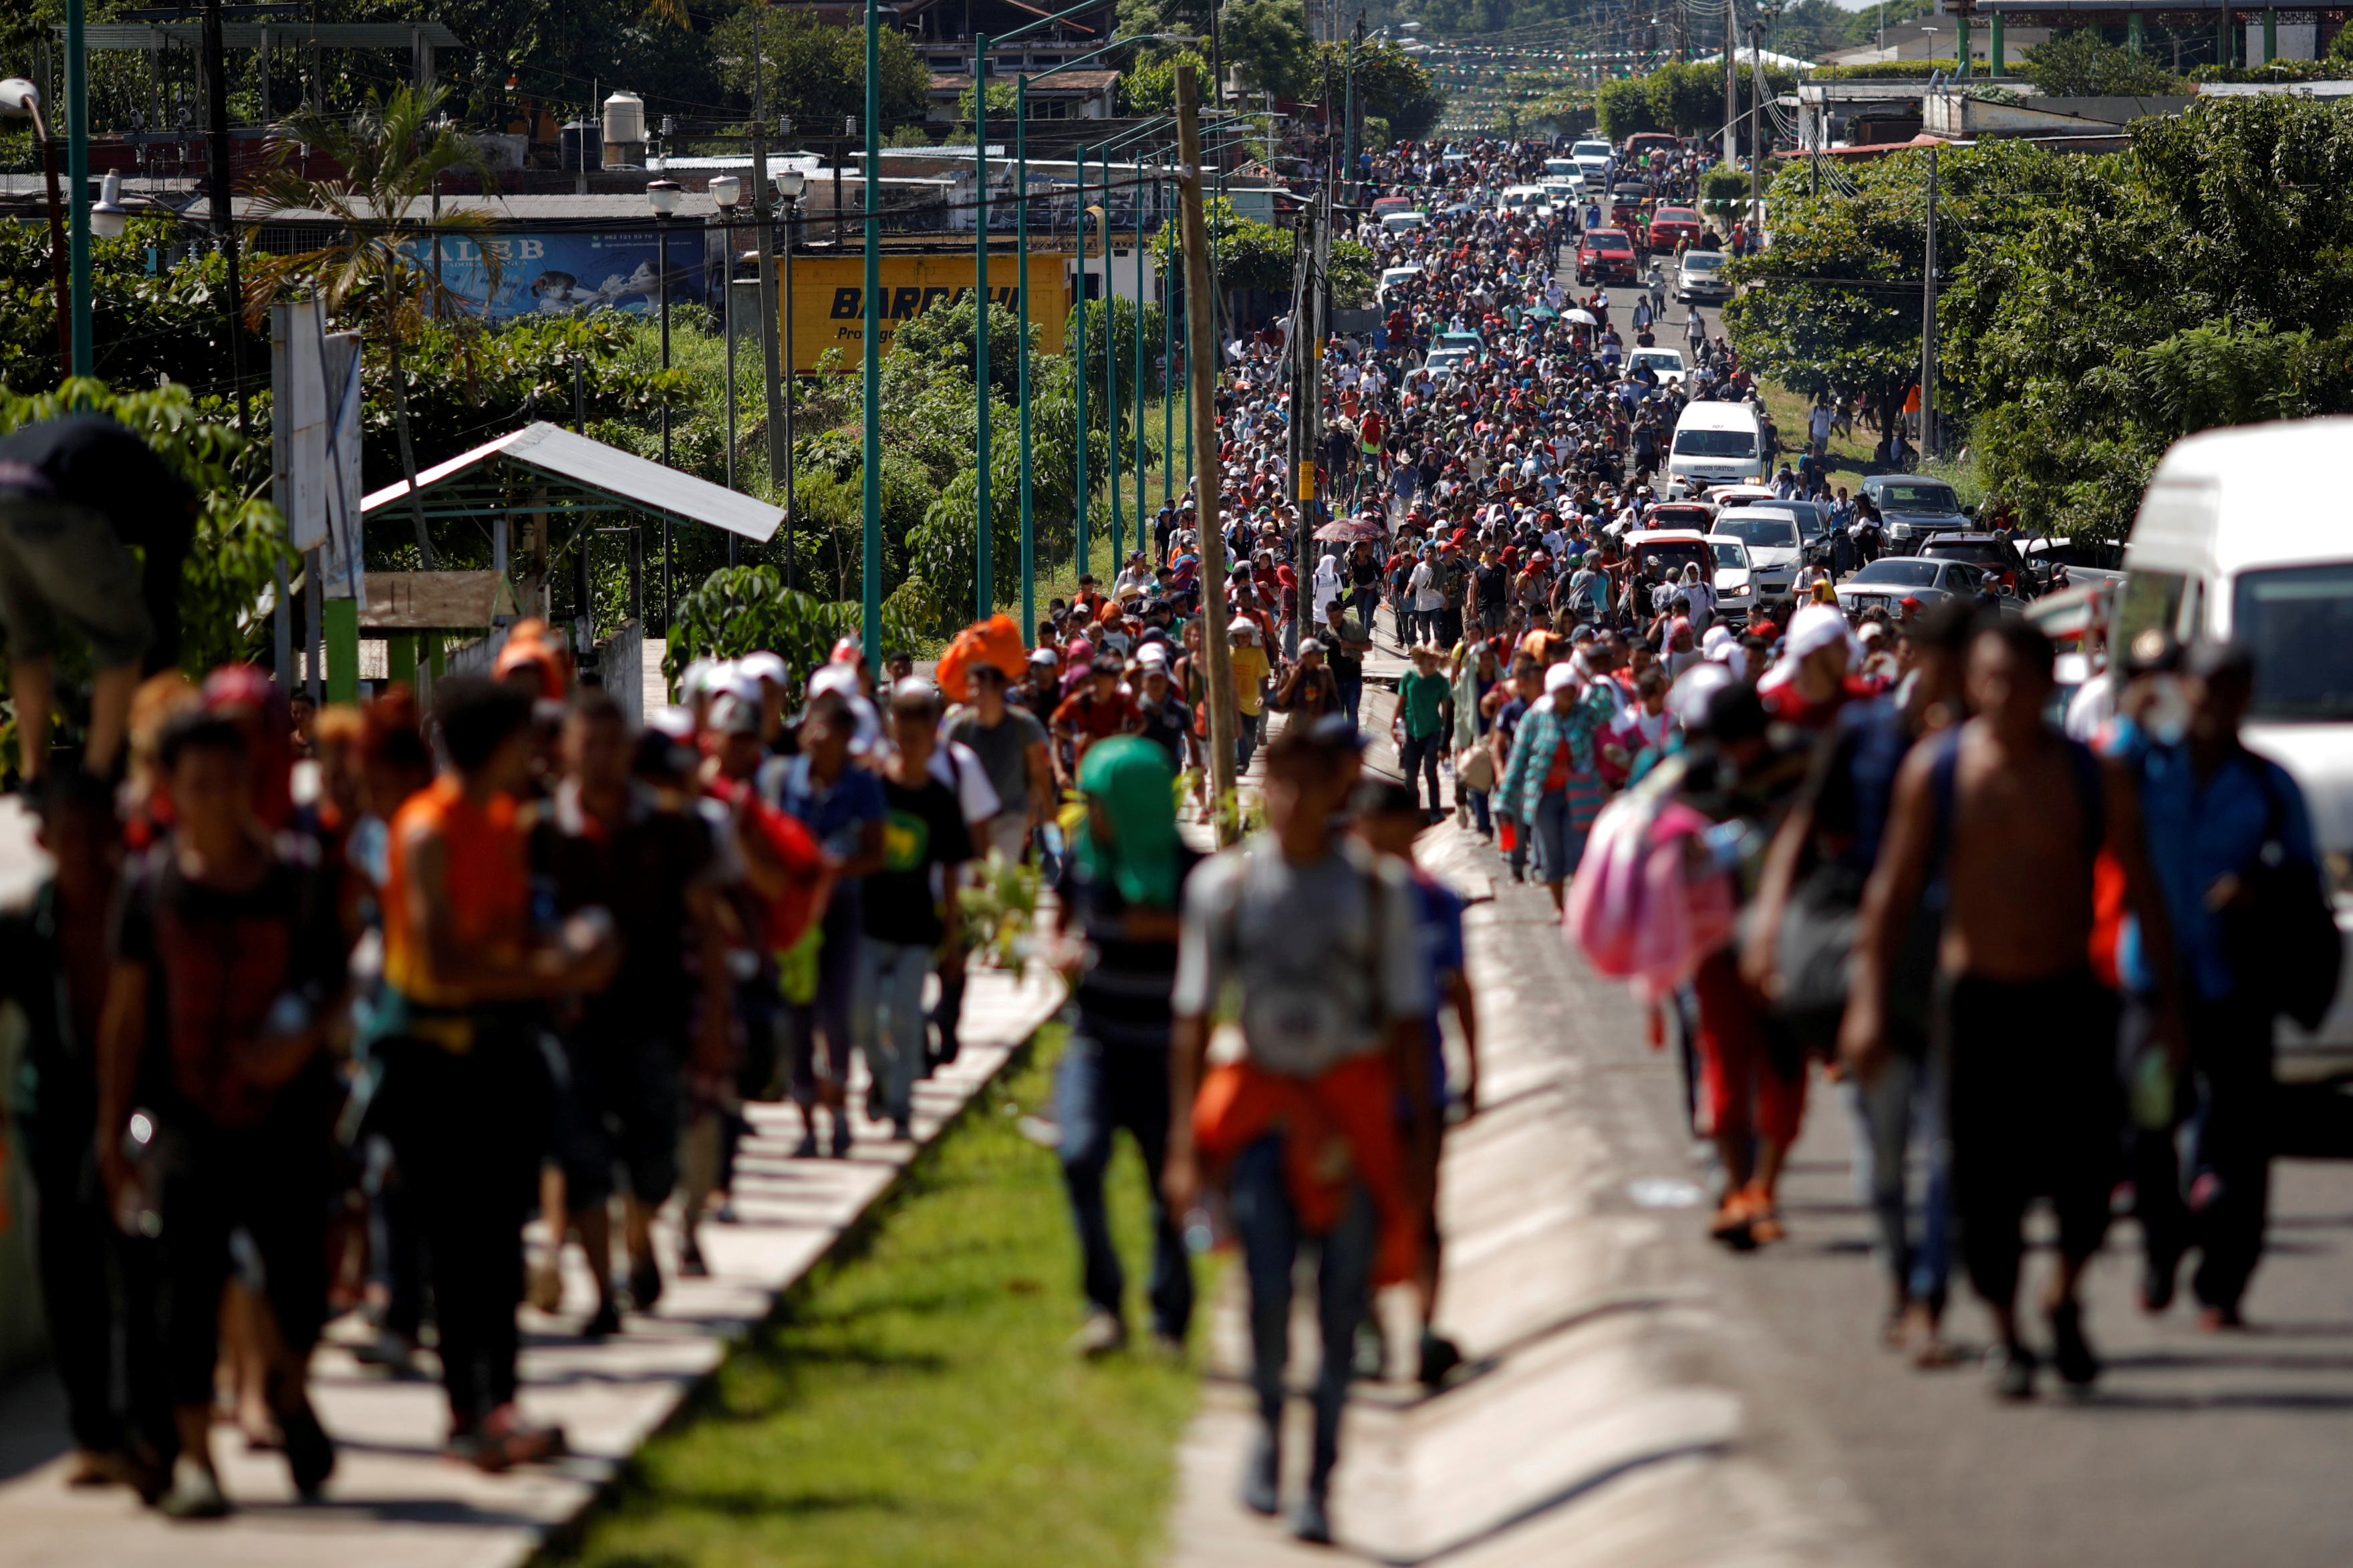 Central American migrants walk along the highway near the border with Guatemala, as they continue their journey trying to reach the U.S., in Tapachula, Mexico October 21, 2018. REUTERS/Ueslei Marcelino